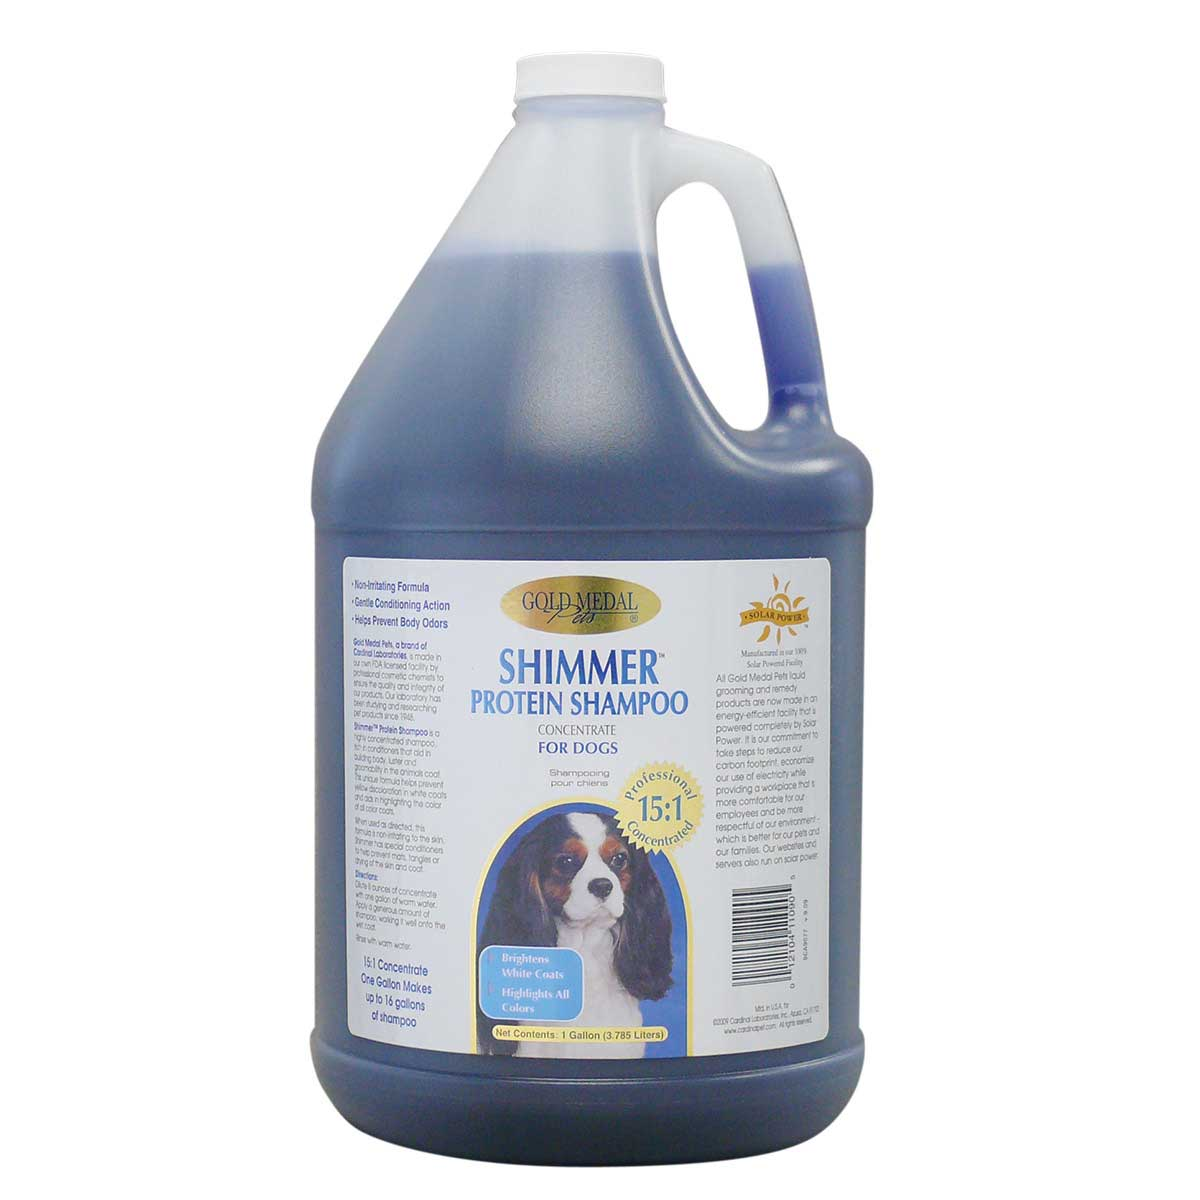 Gold Medal Shimmer Protein Shampoo Gallon - 15 to 1